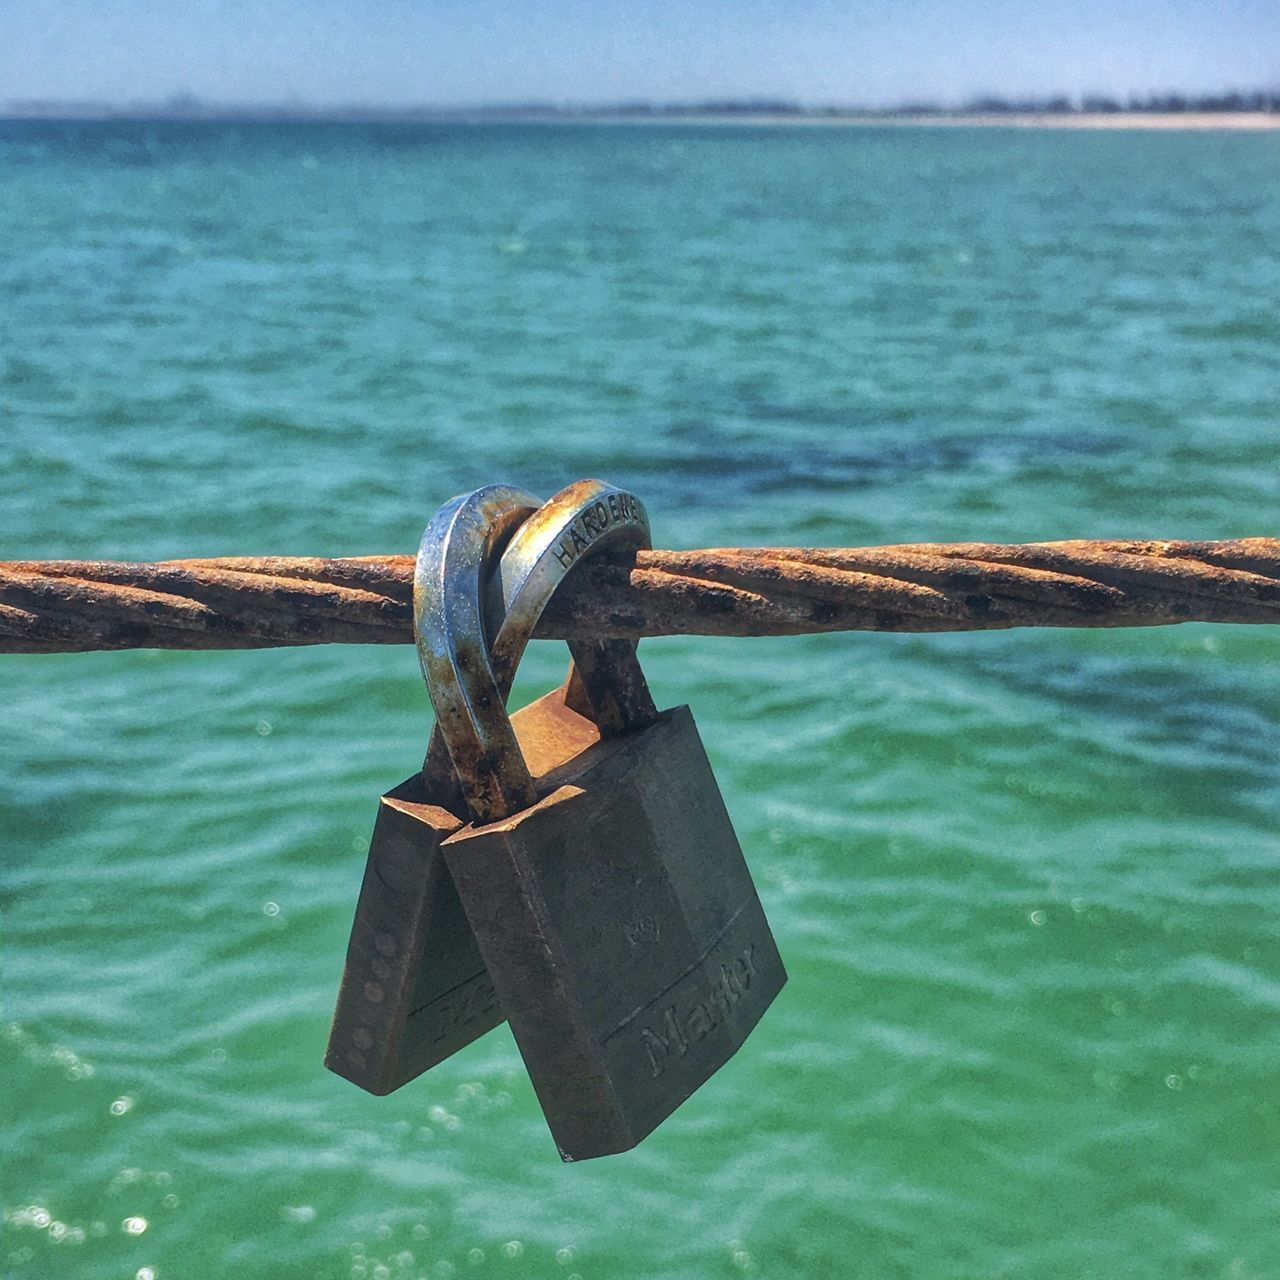 padlock, security, lock, water, metal, safety, love lock, sea, protection, hanging, chain, no people, outdoors, hope, love, day, close-up, horizon over water, sky